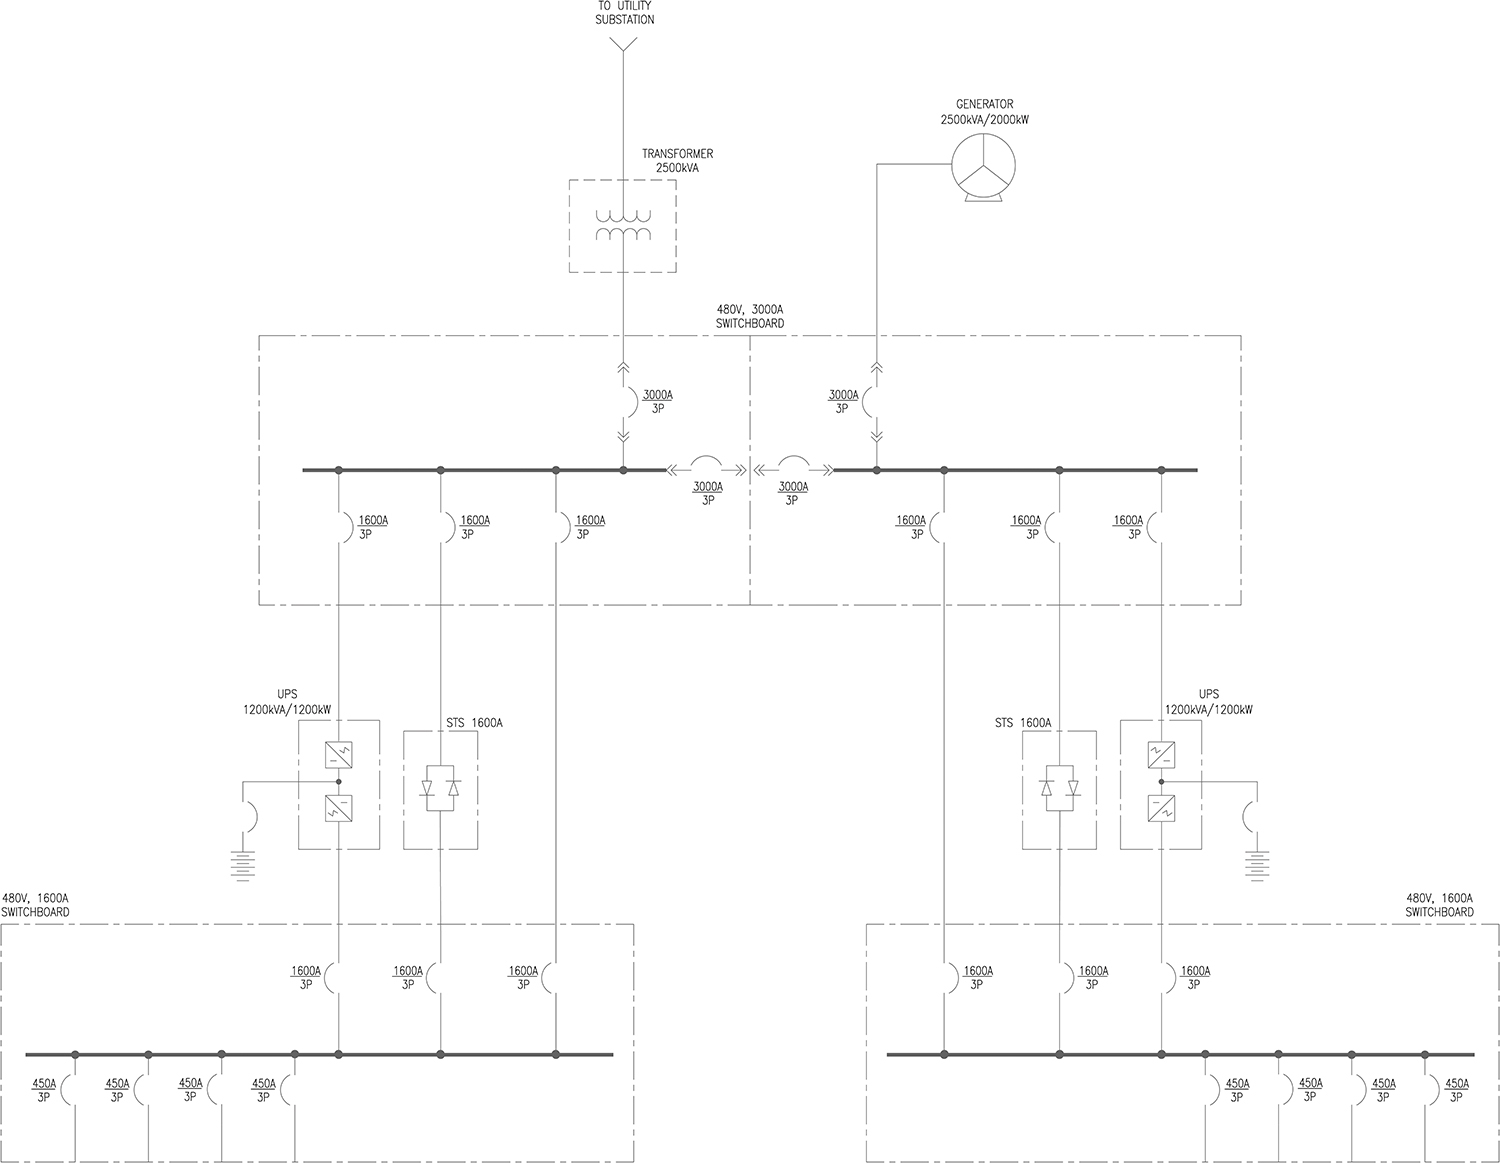 vw beetle wiring diagram images chilled water system valve diagram further fire pump system diagram in